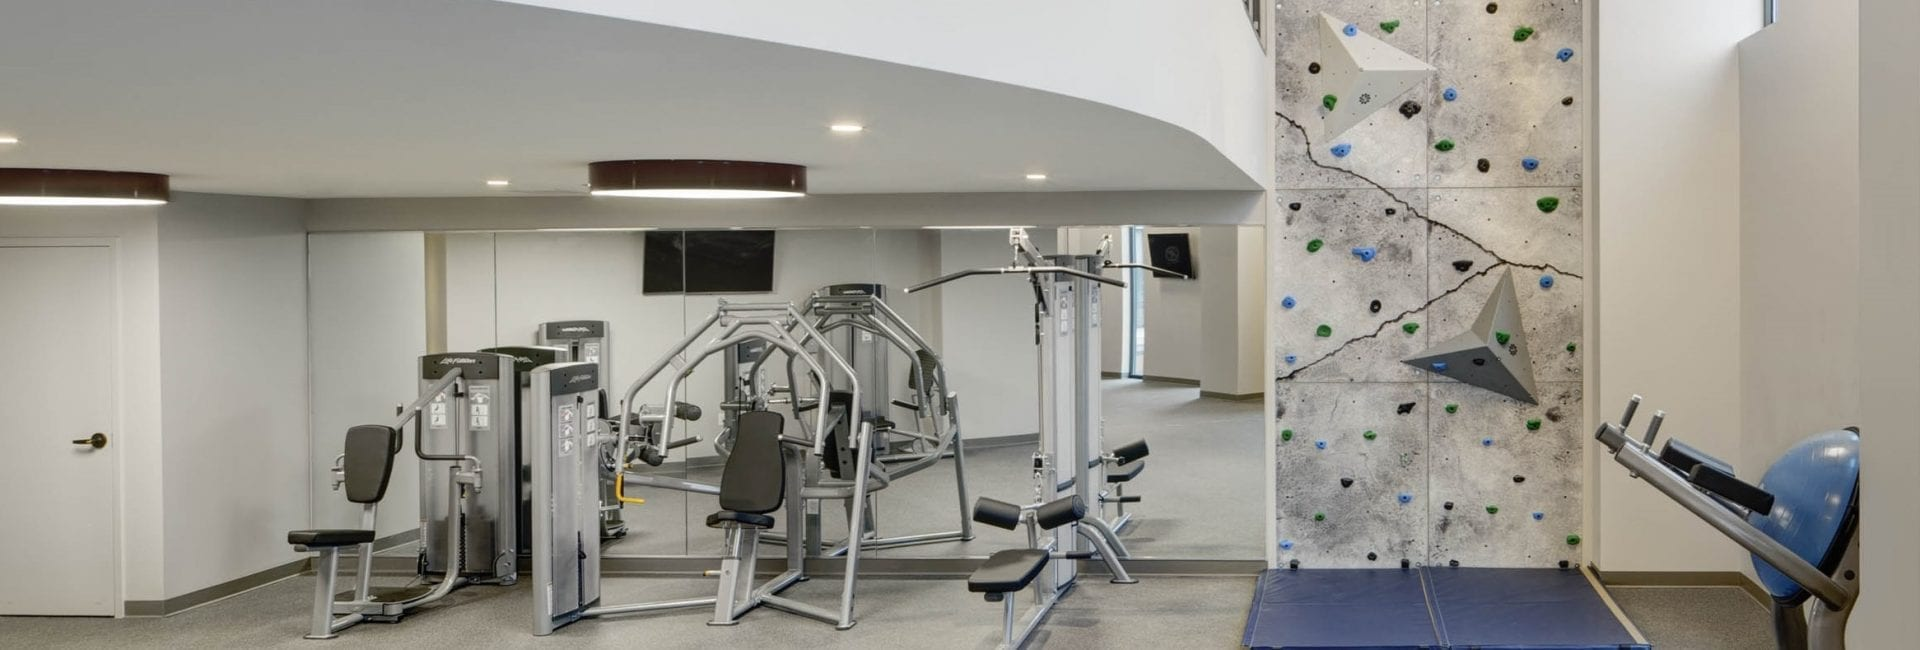 The Kendrick's fitness center including fitness machines and rock climbing wall.